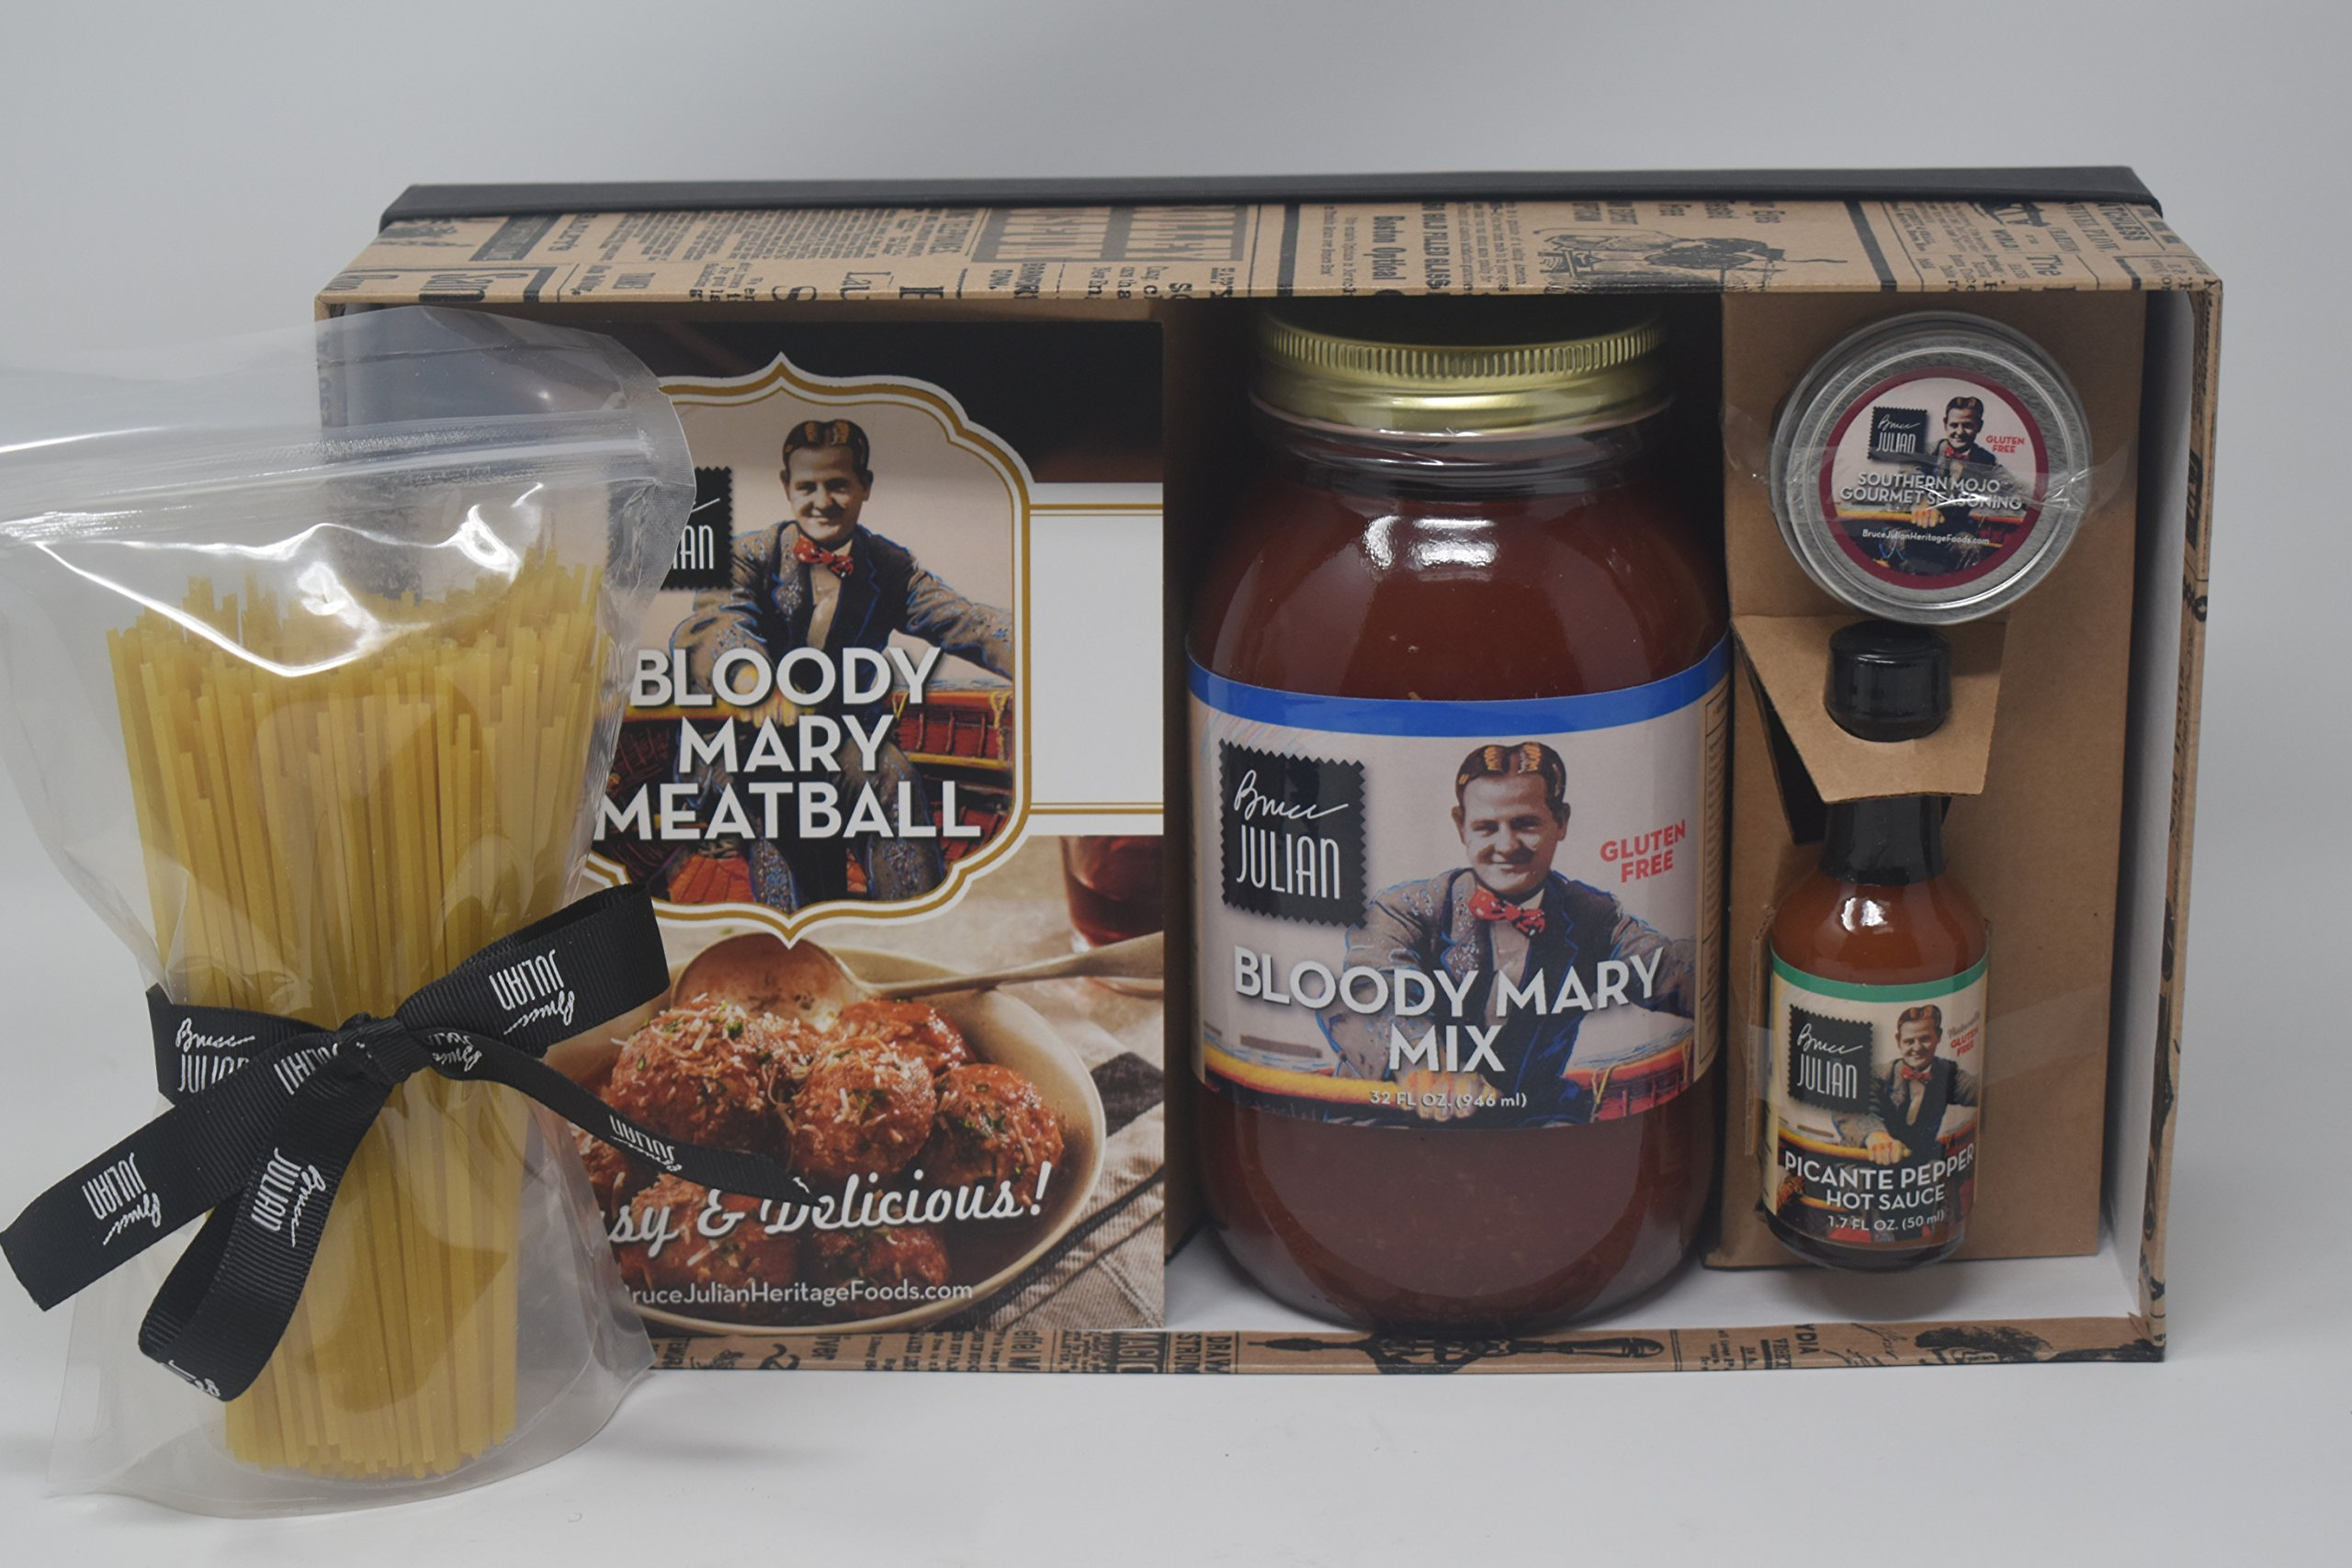 Bruce Julian Bloody Mary Meatballs and Spaghetti Meal Kit by Bruce Julian Heritage Foods